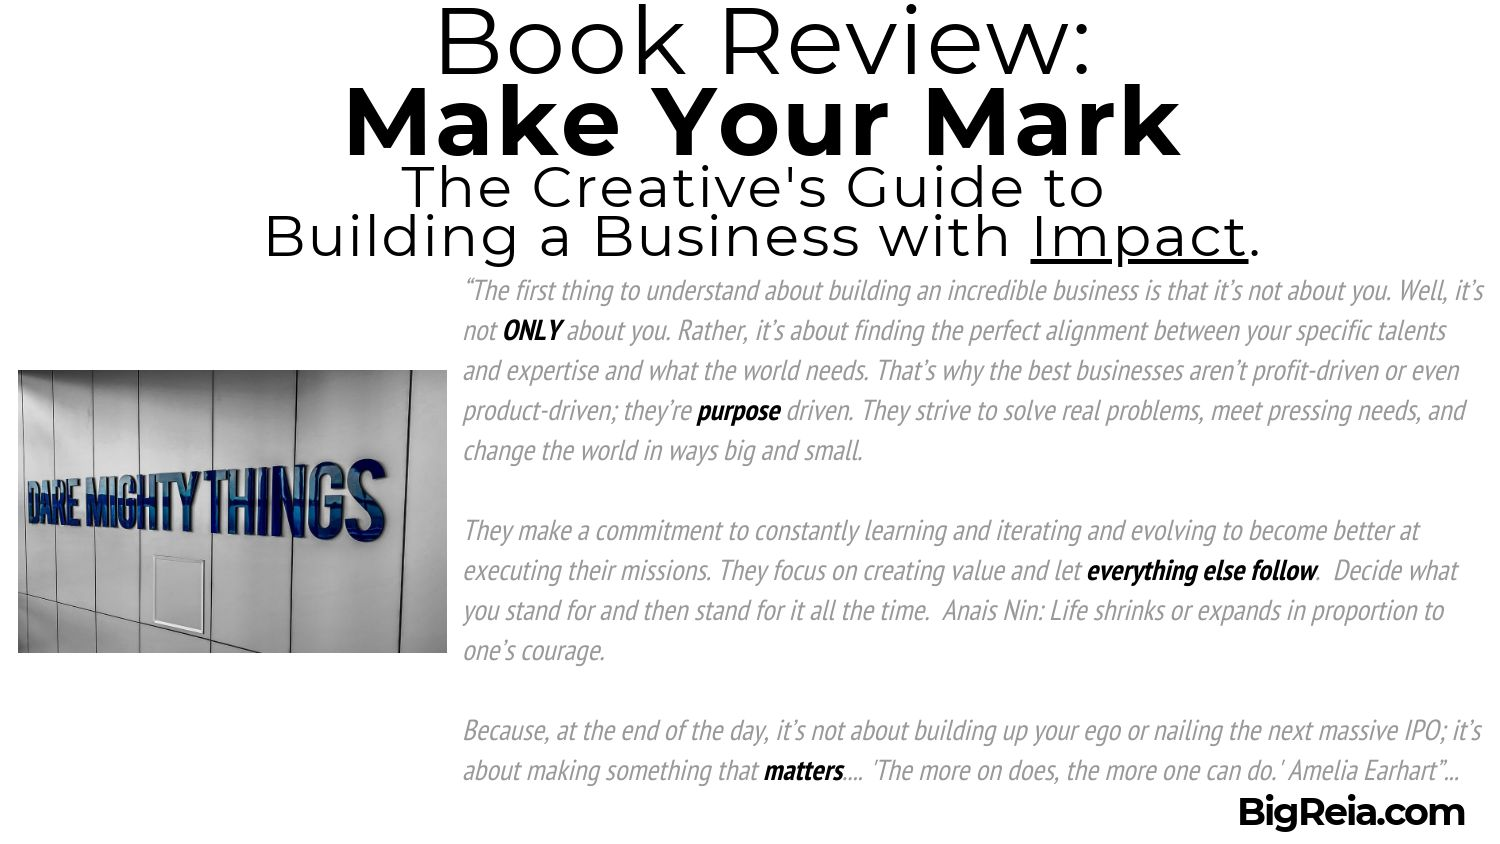 Make Your Mark book review